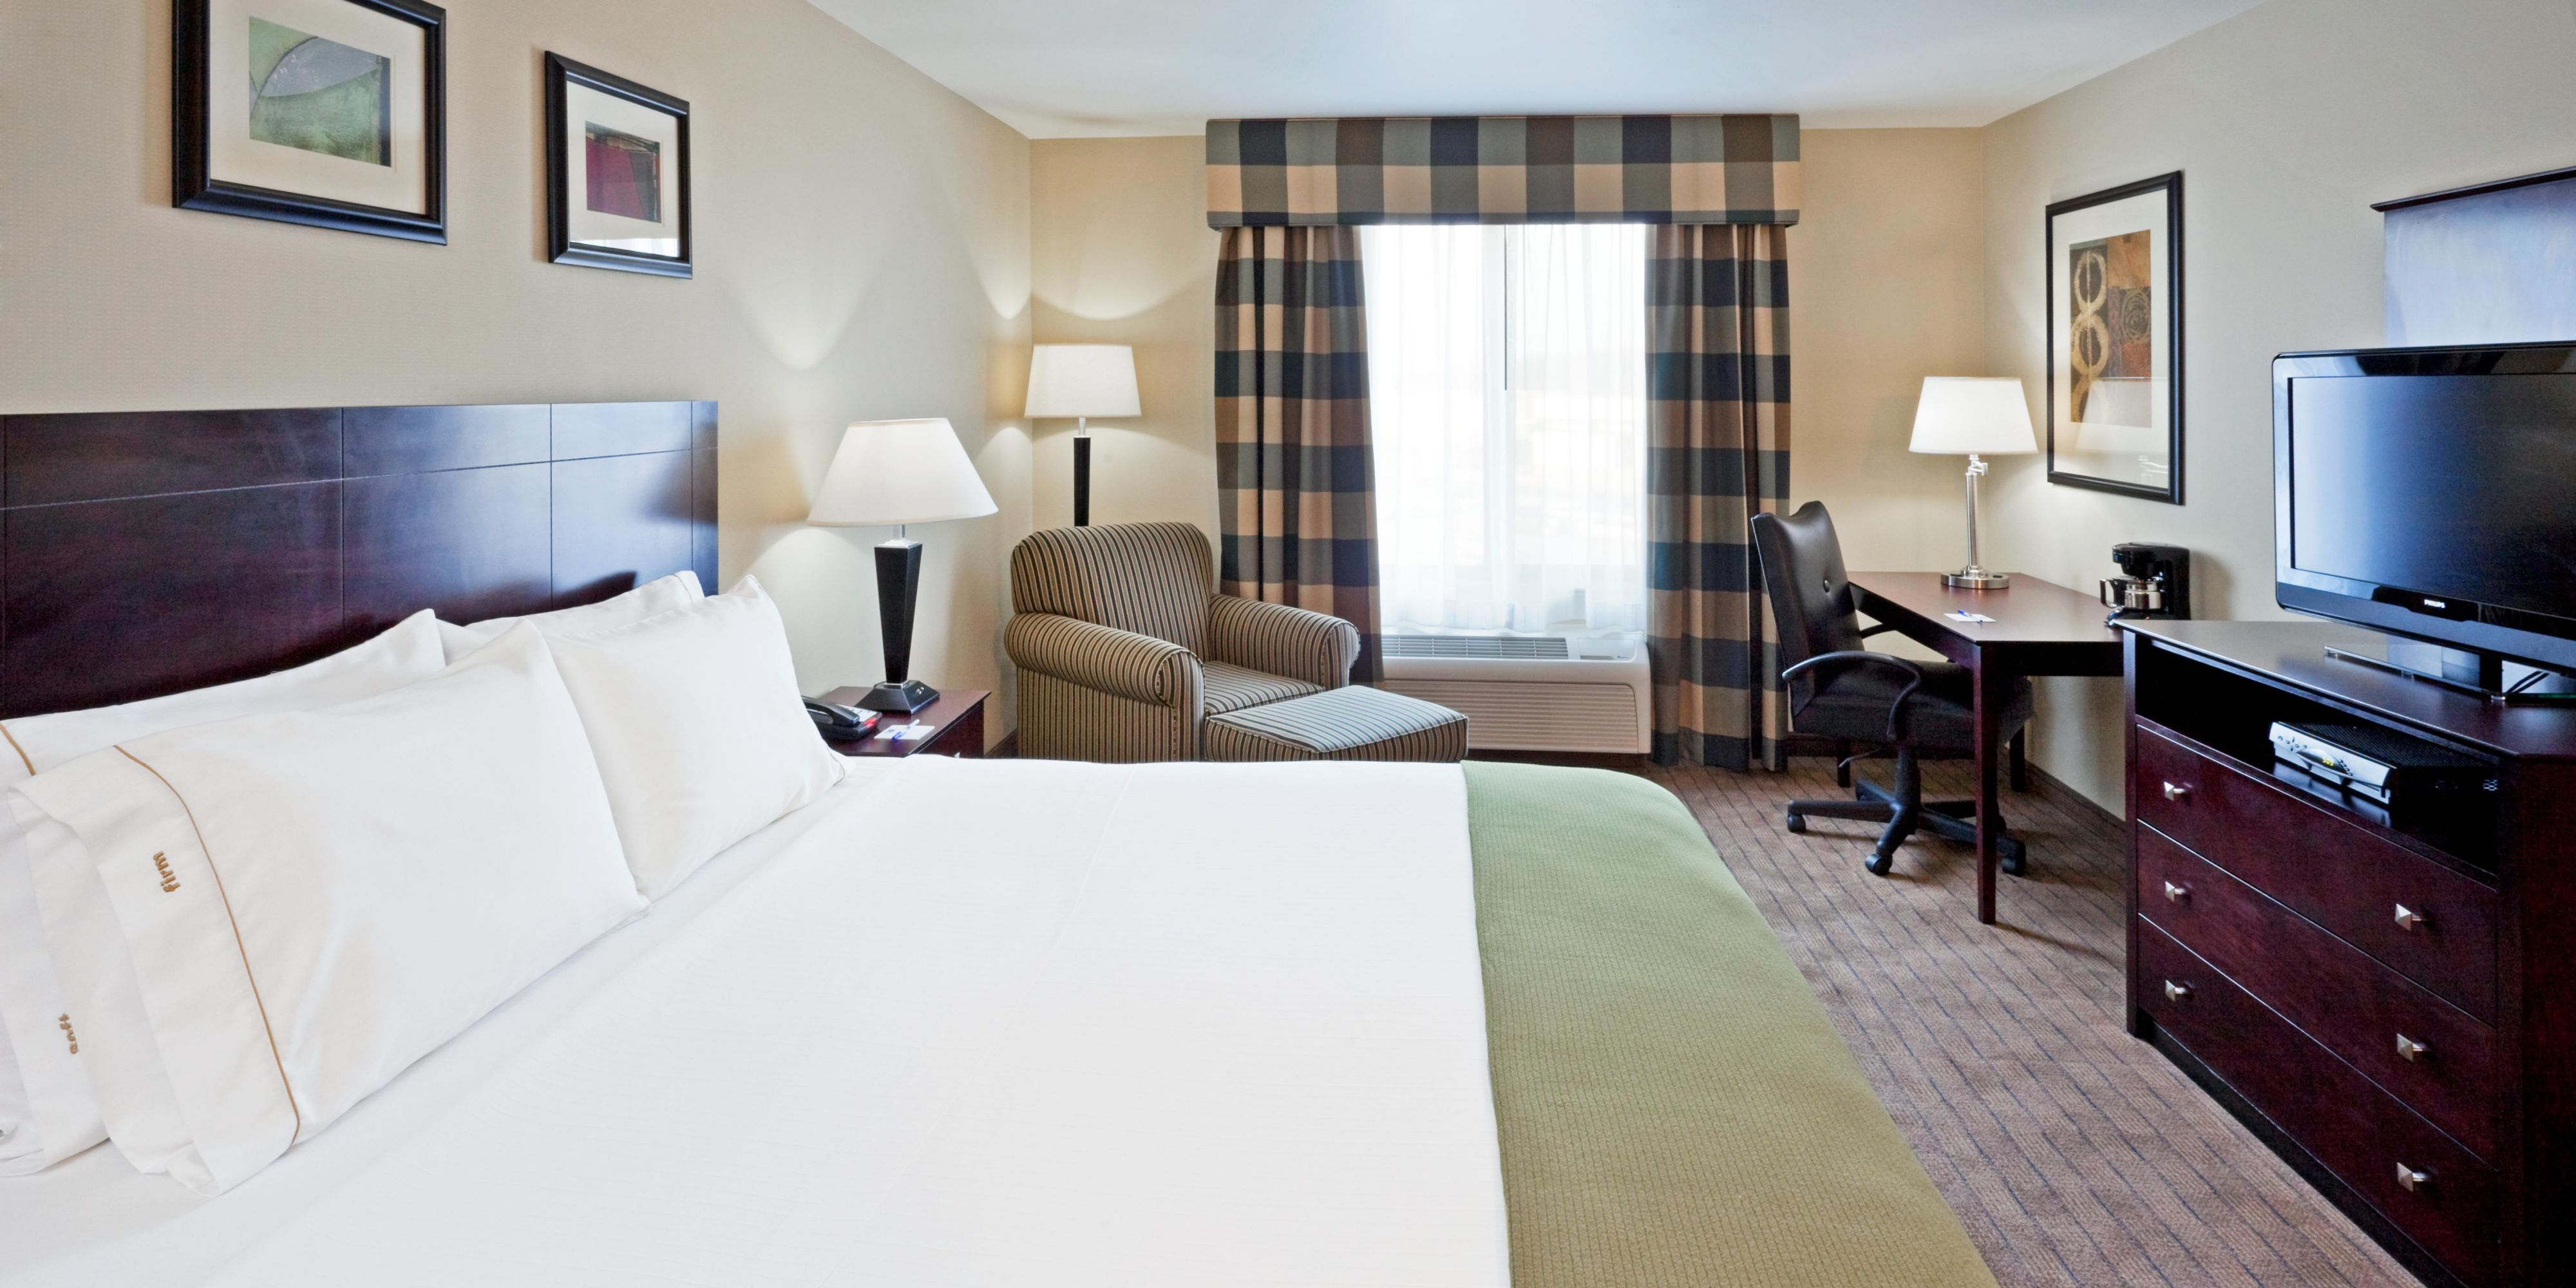 Holiday Inn Express & Suites Syracuse North - Airport Area Hotel by IHG